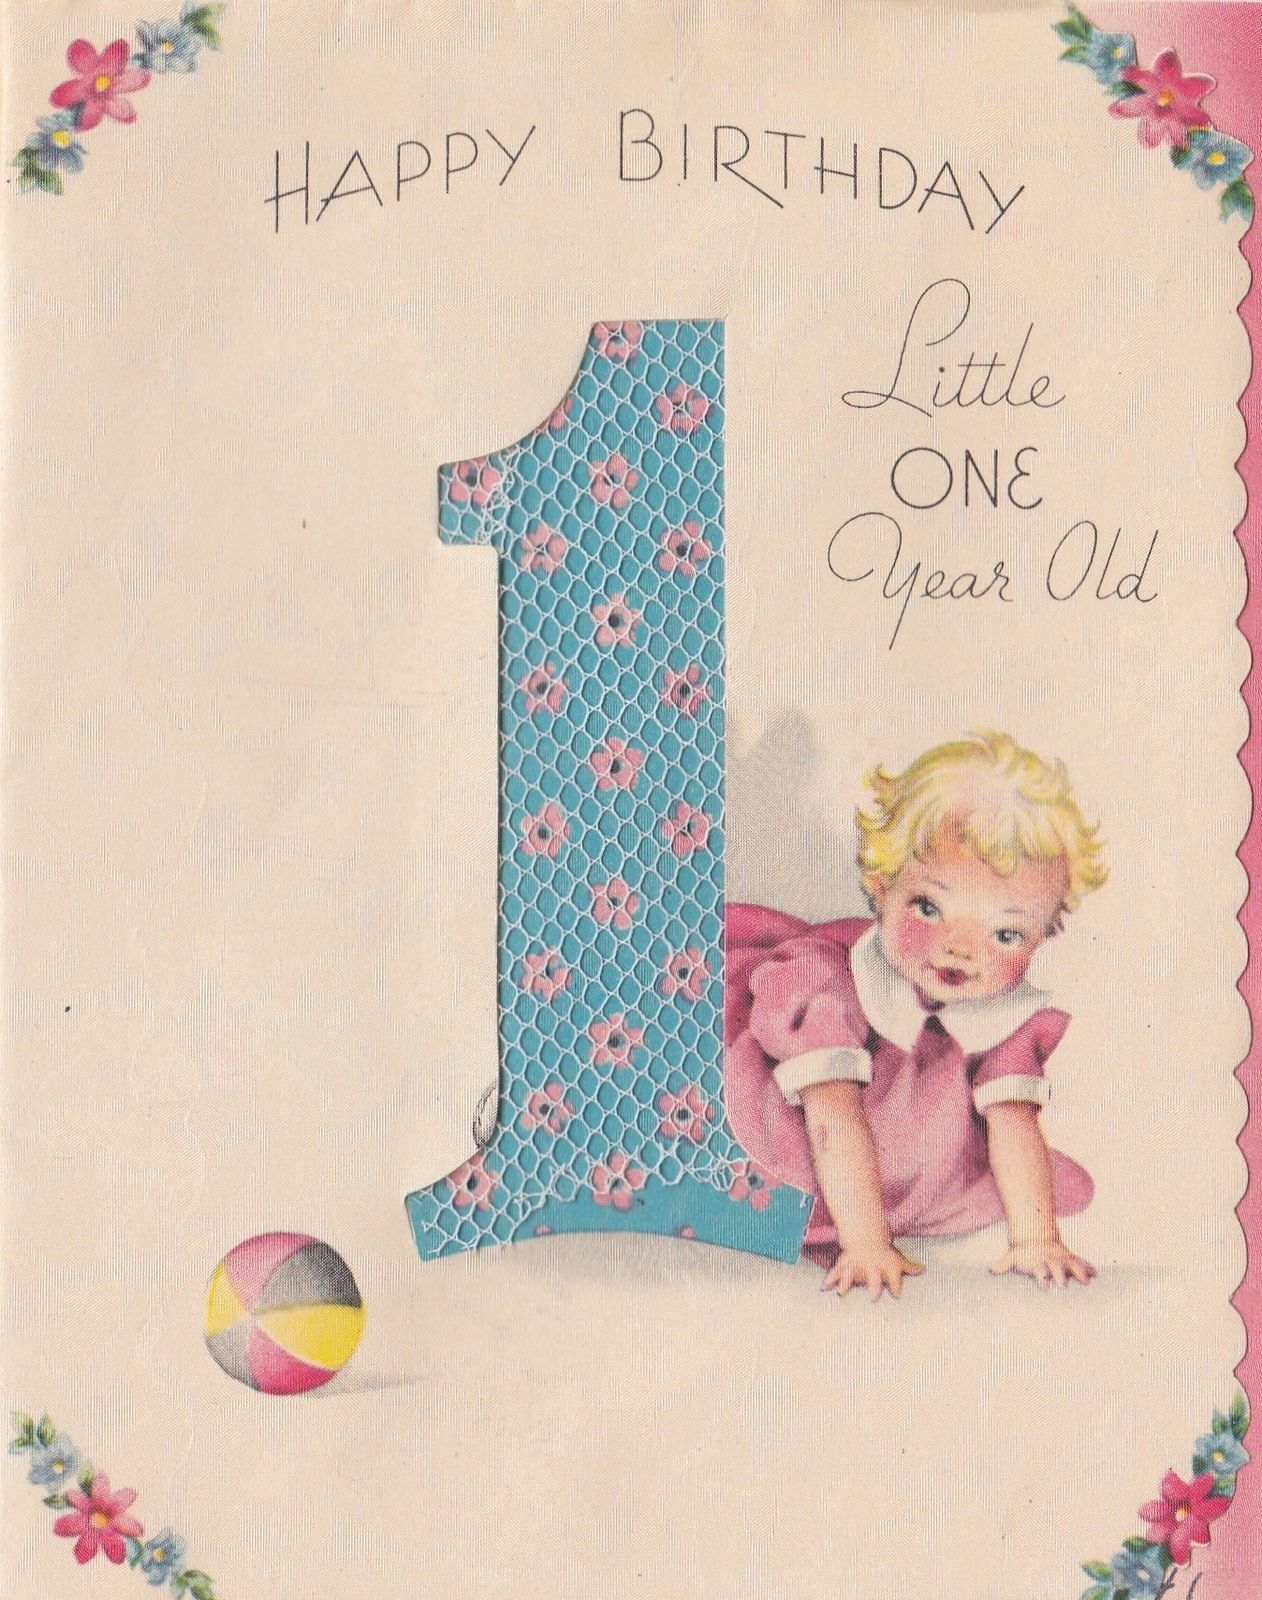 Vintage Greeting Card Baby e 1 Year Old First Birthday Baby